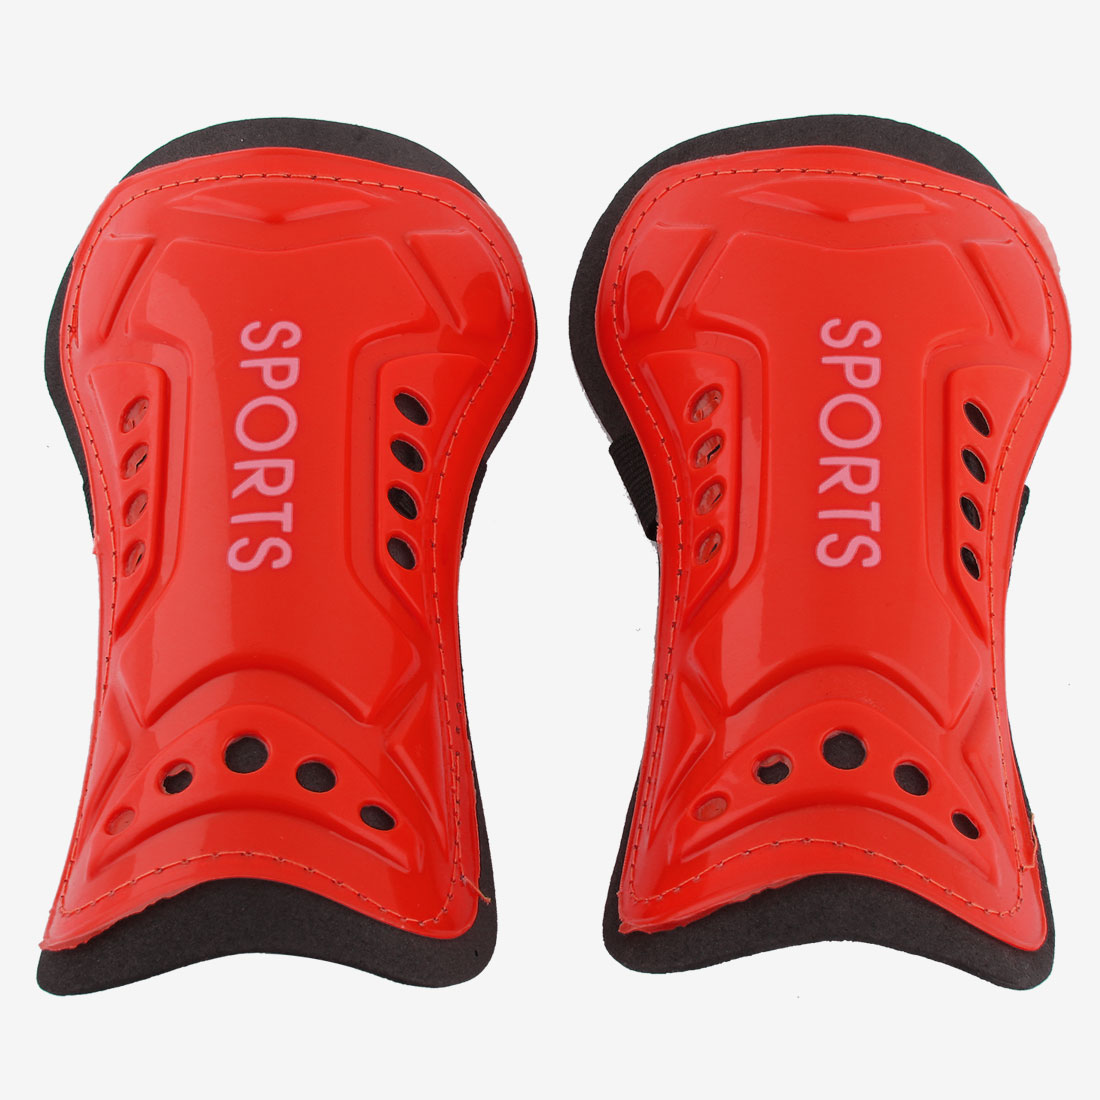 Outdoor Sports Support Shield Calf Sleeve Guard Leg Protector Pair